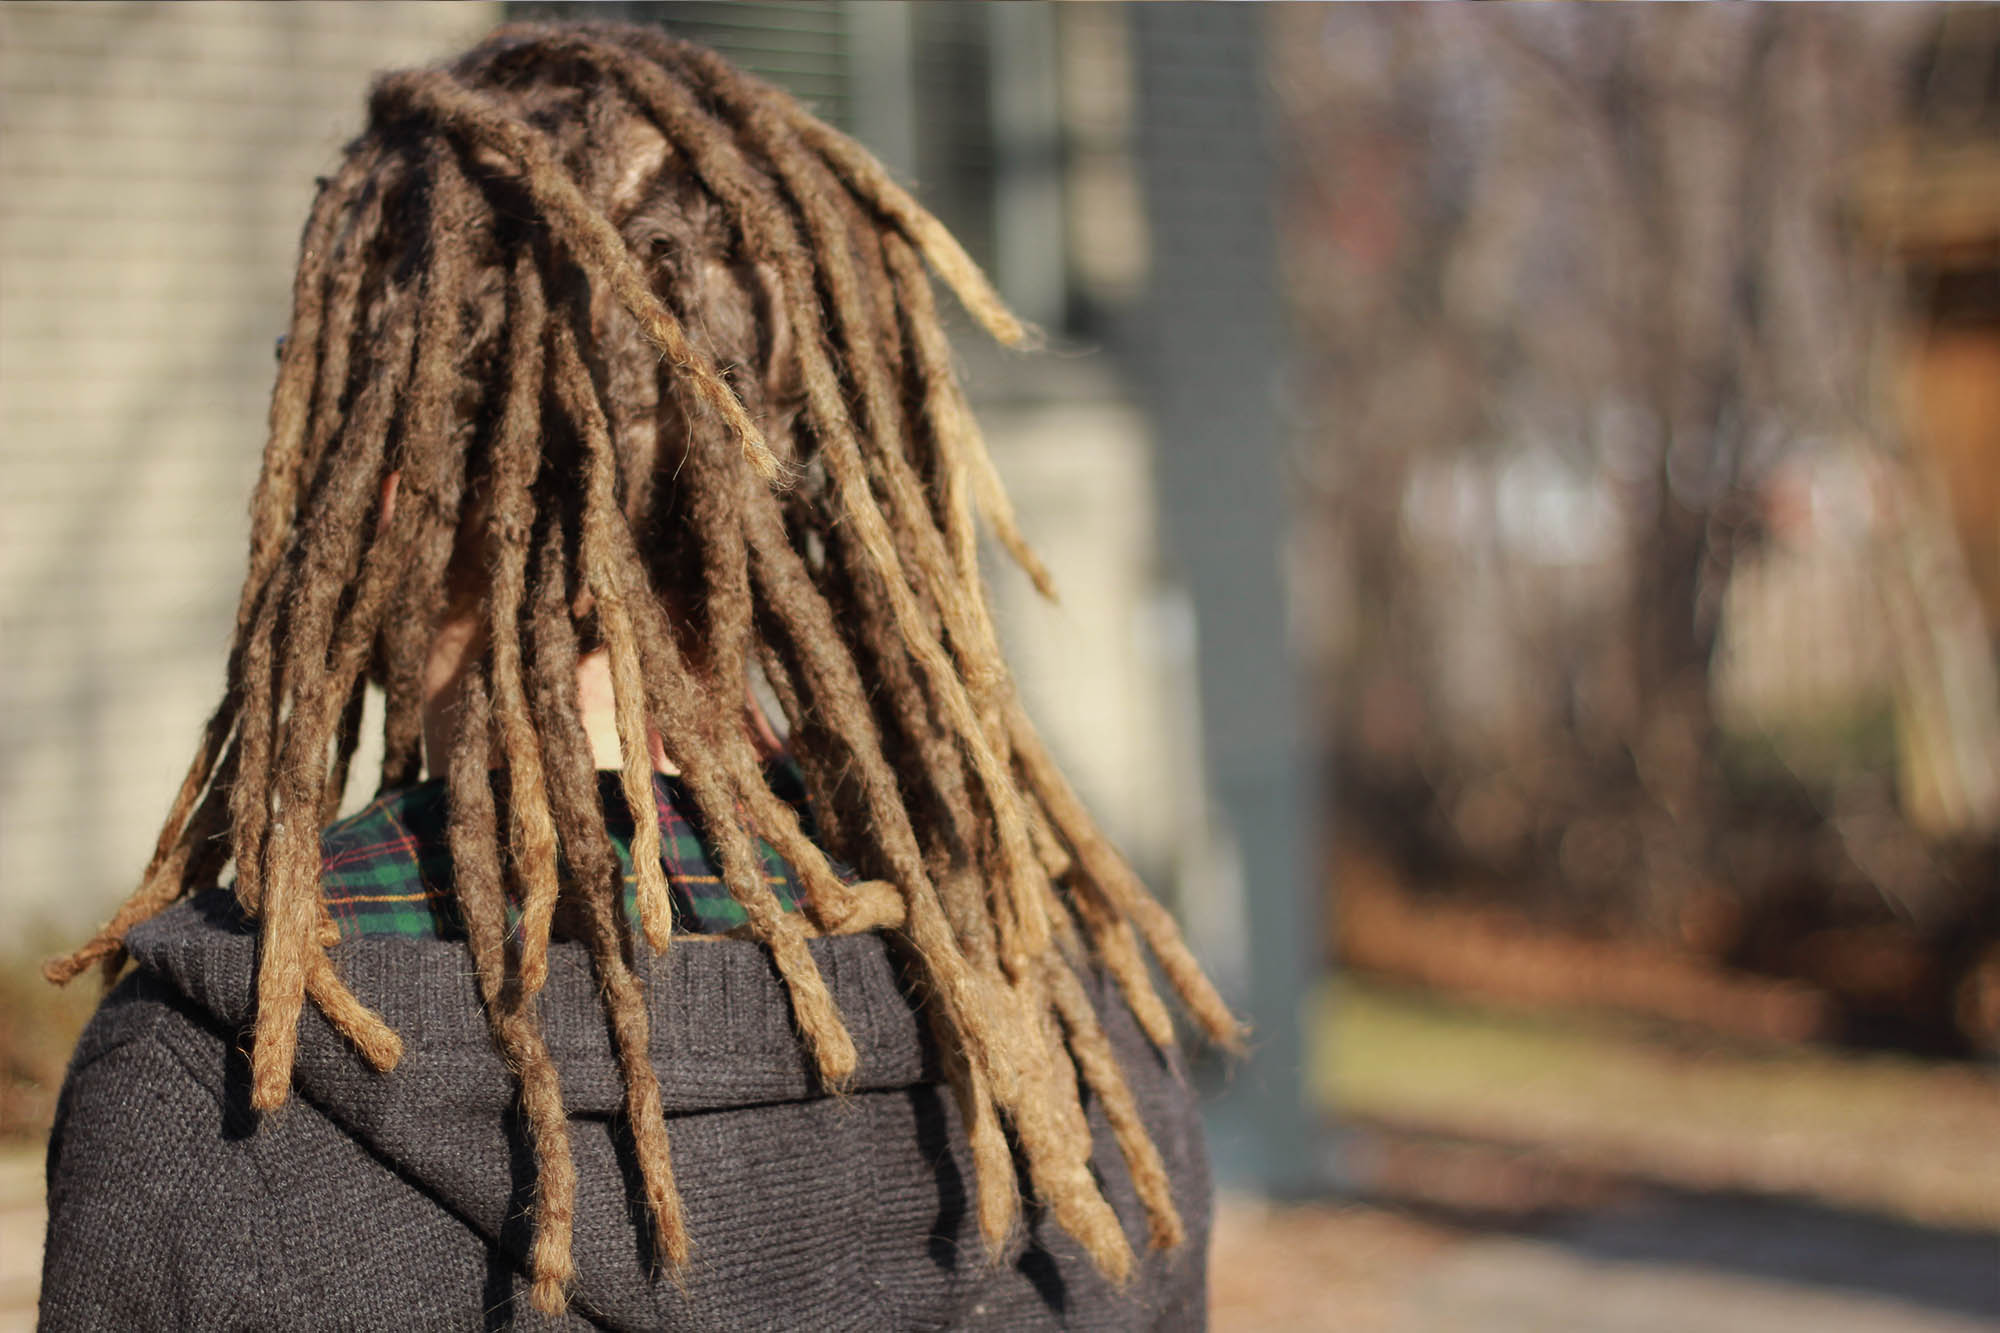 Back view of williams dreadlocks, brunette mix blonde guy with nice looking dreadlocks in Montreal.